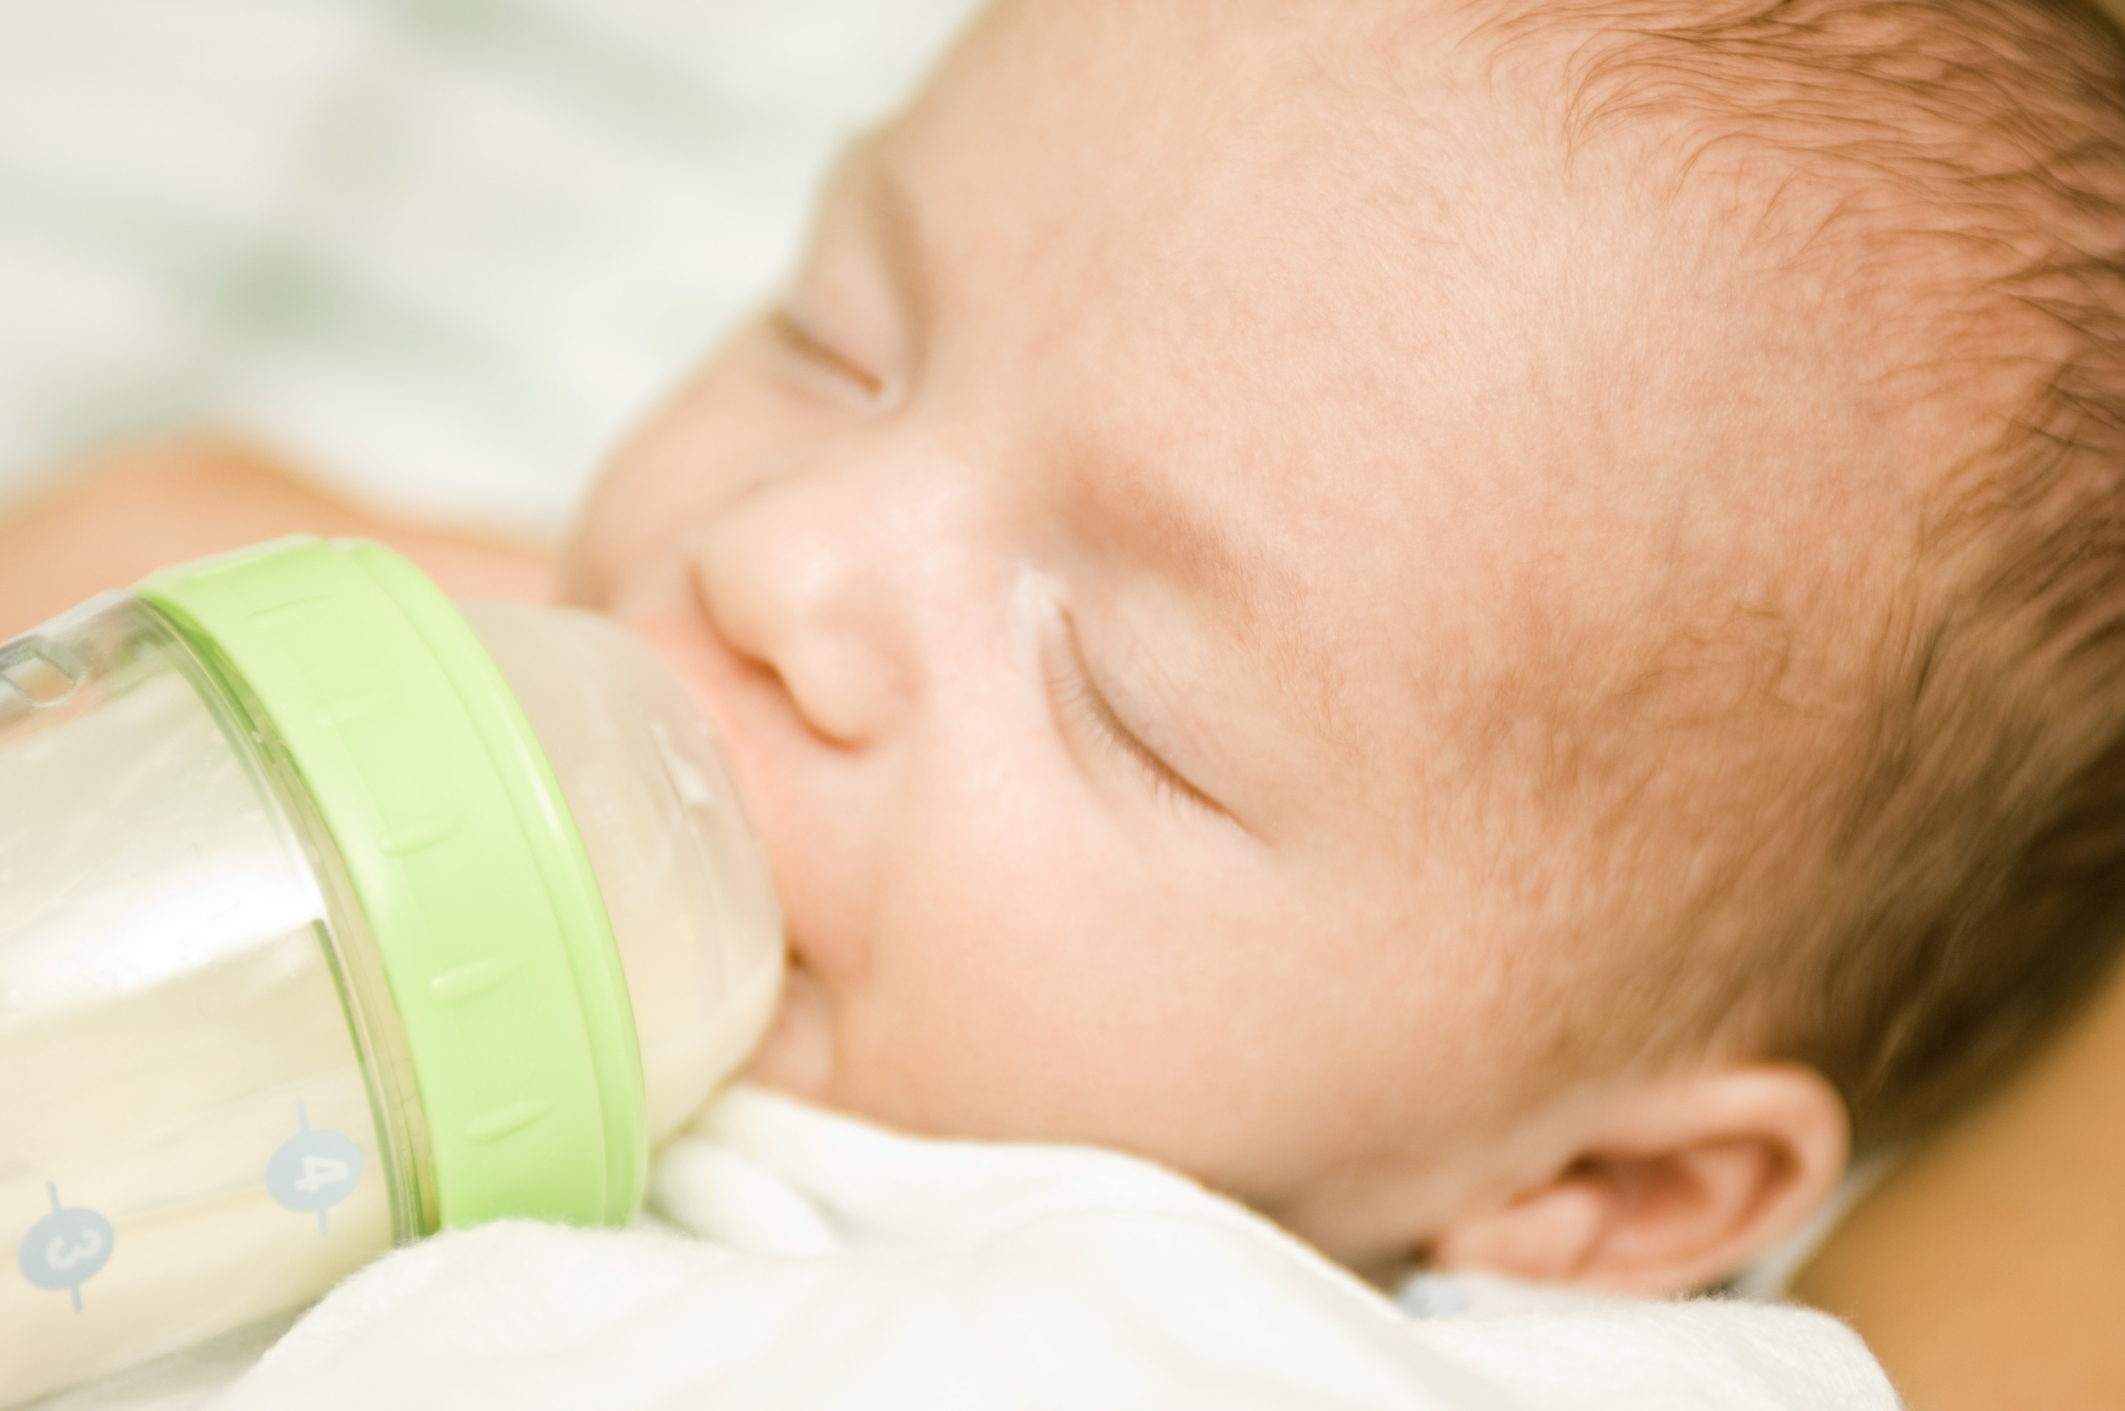 Signs & Symptoms of Malnutrition in Babies